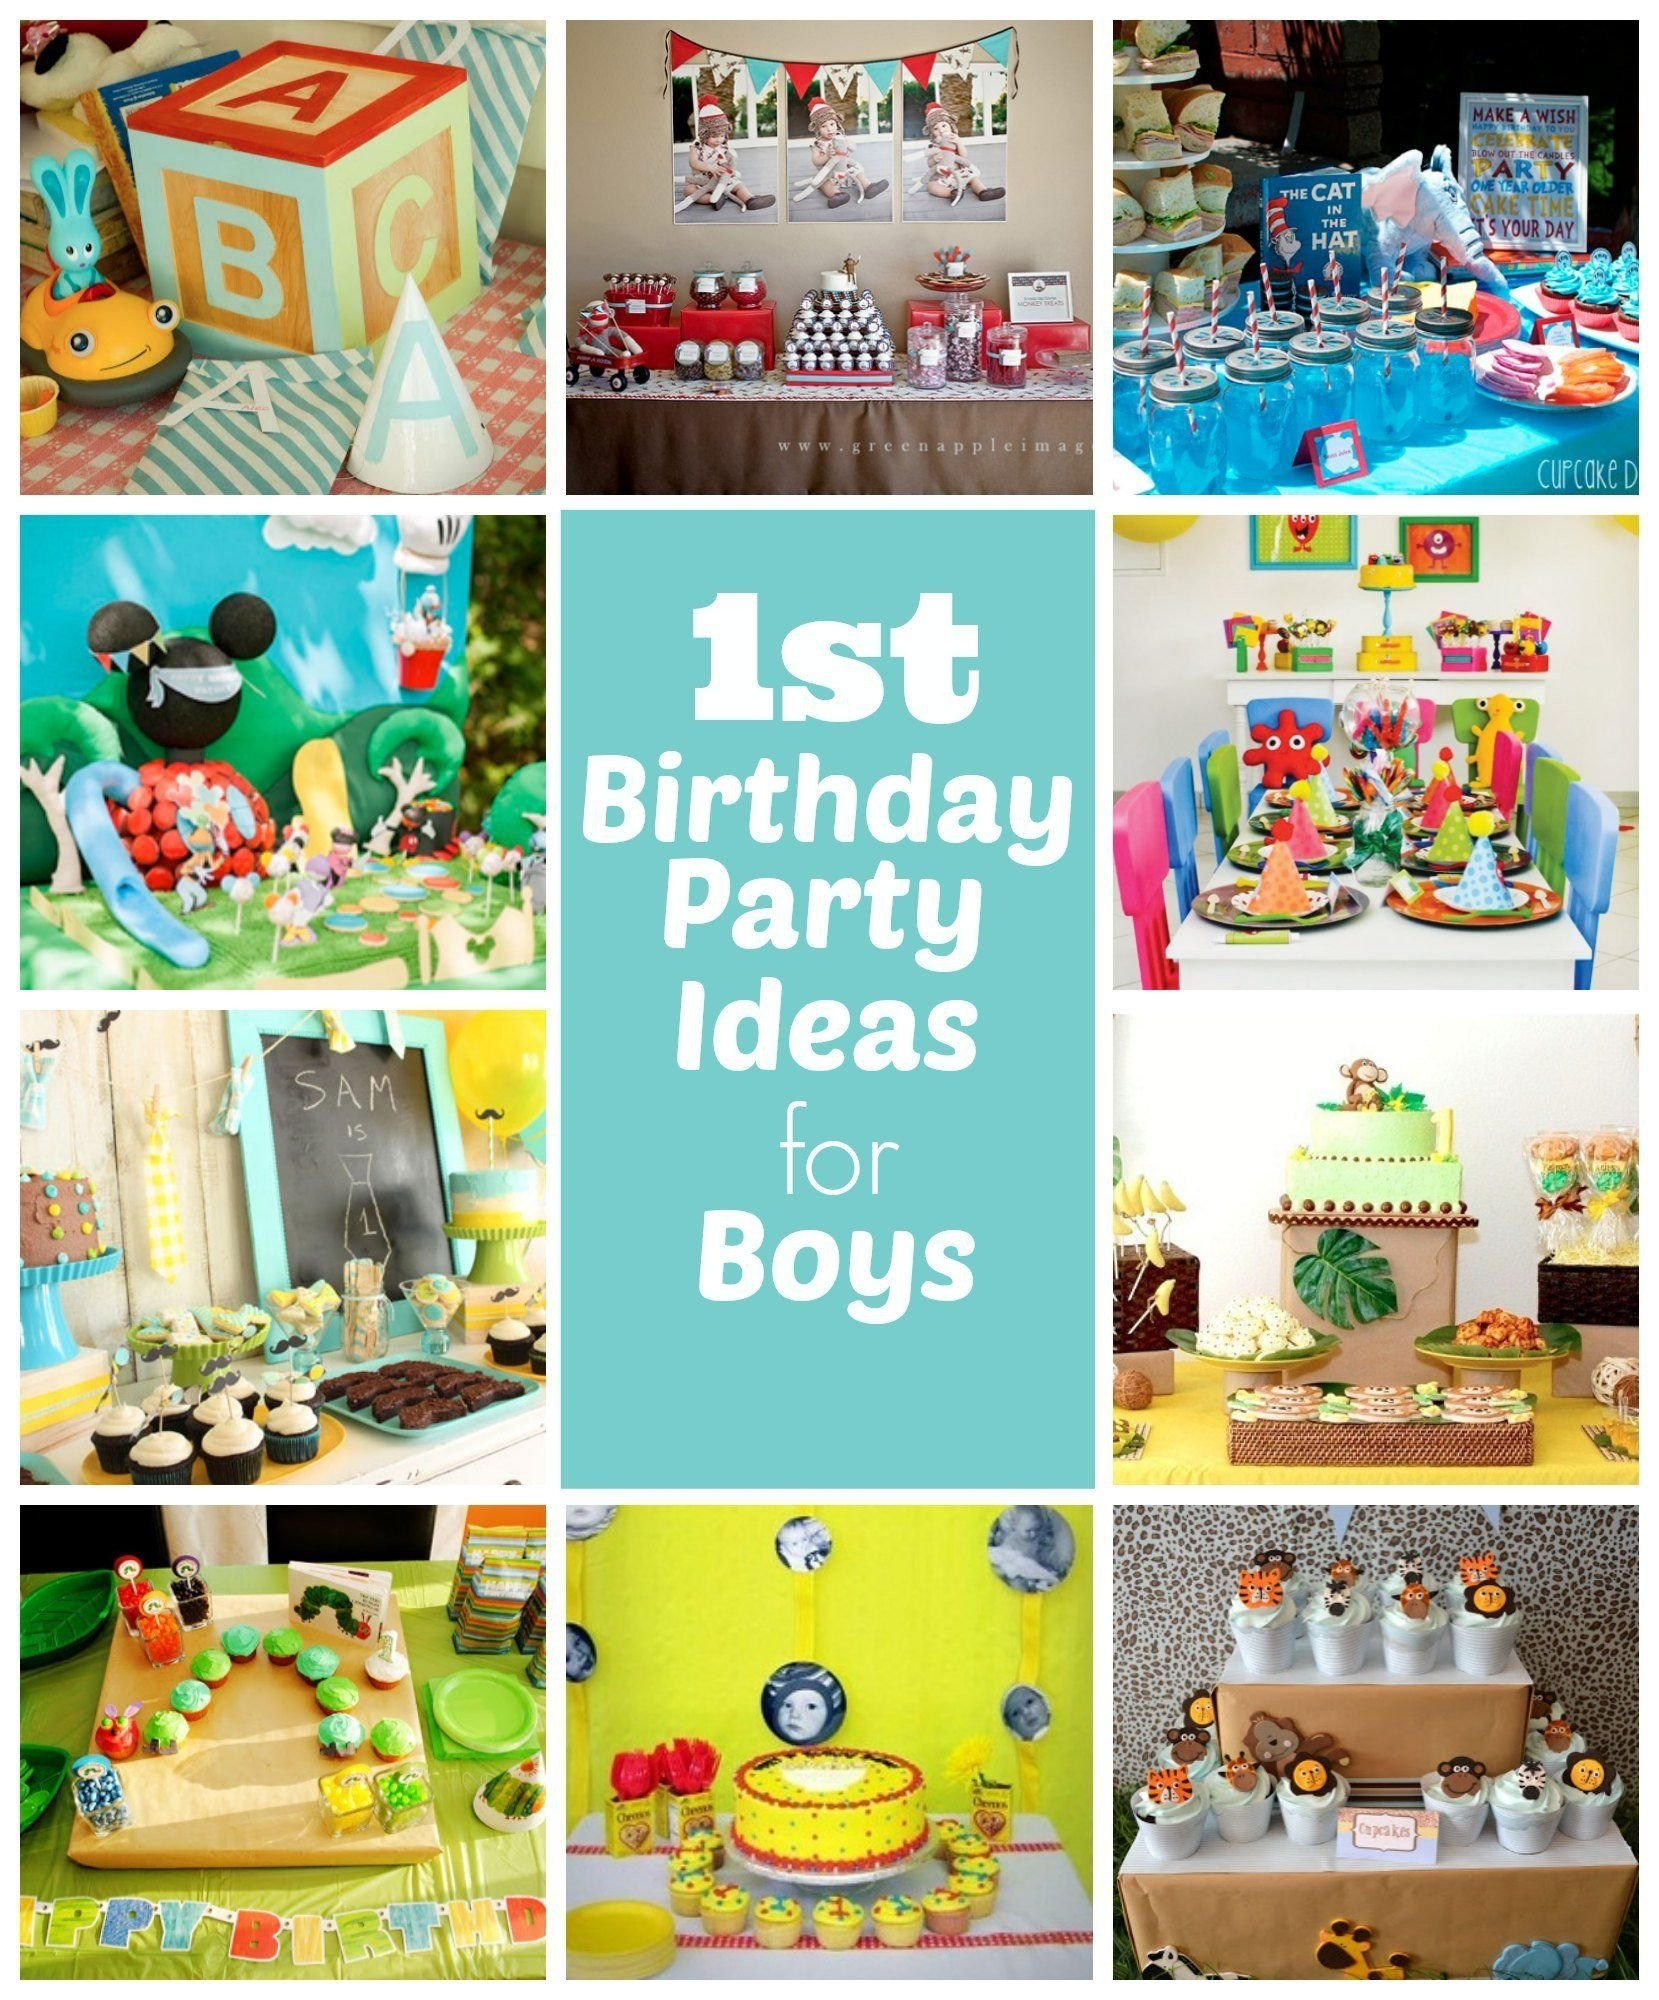 10 Ideal One Year Old Birthday Party Ideas For Boys My Littlest Guy Just Turned A